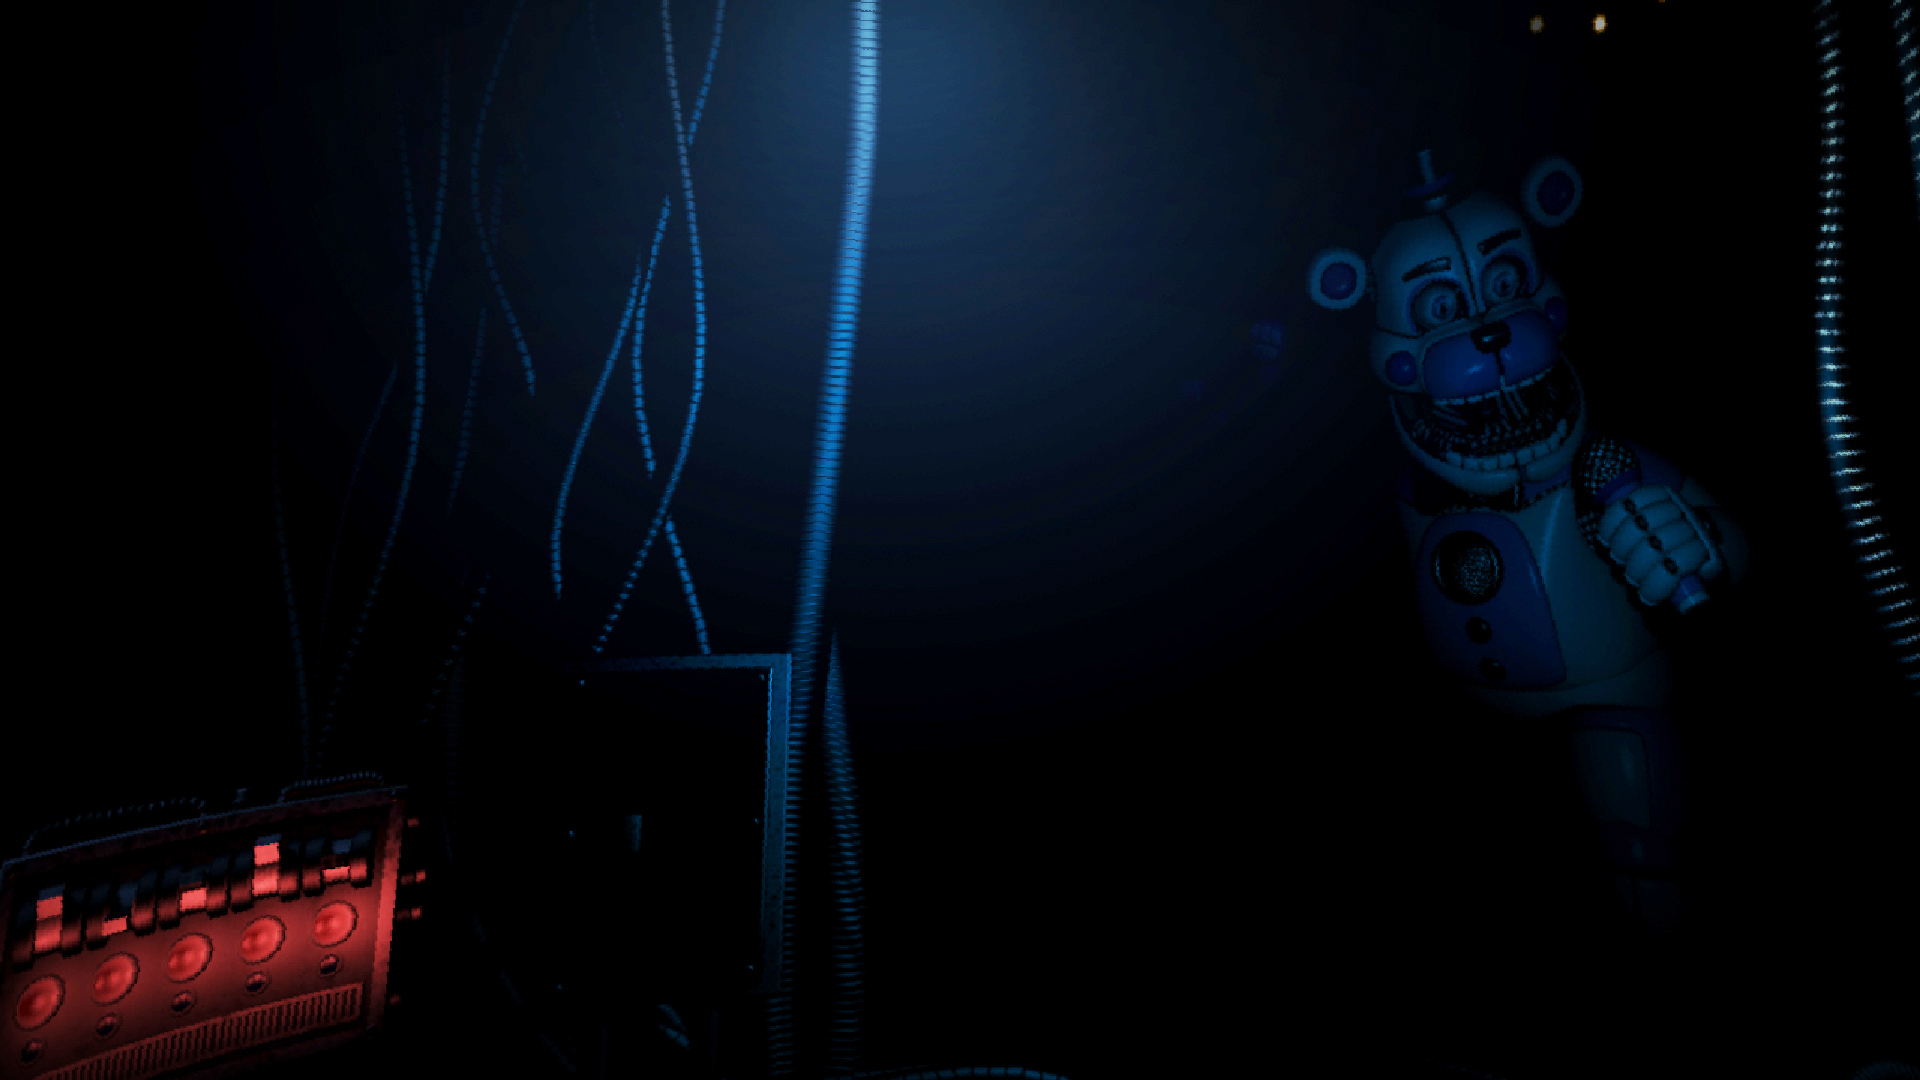 5 nights of freddy sister location game